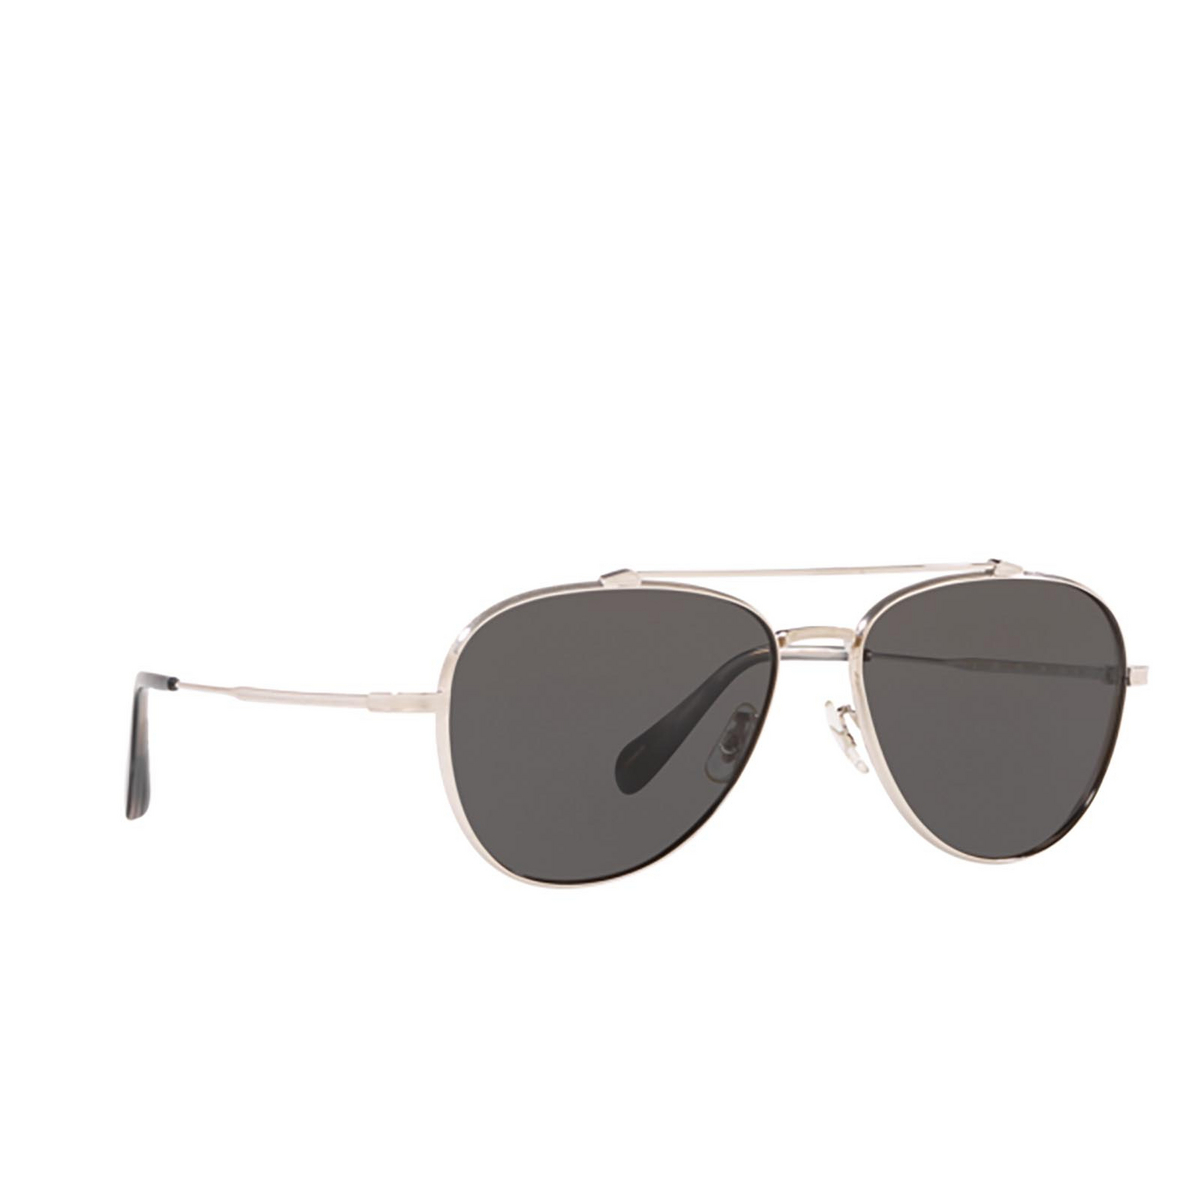 Oliver Peoples® Aviator Sunglasses: Rikson OV1266ST color Silver 503687 - three-quarters view.